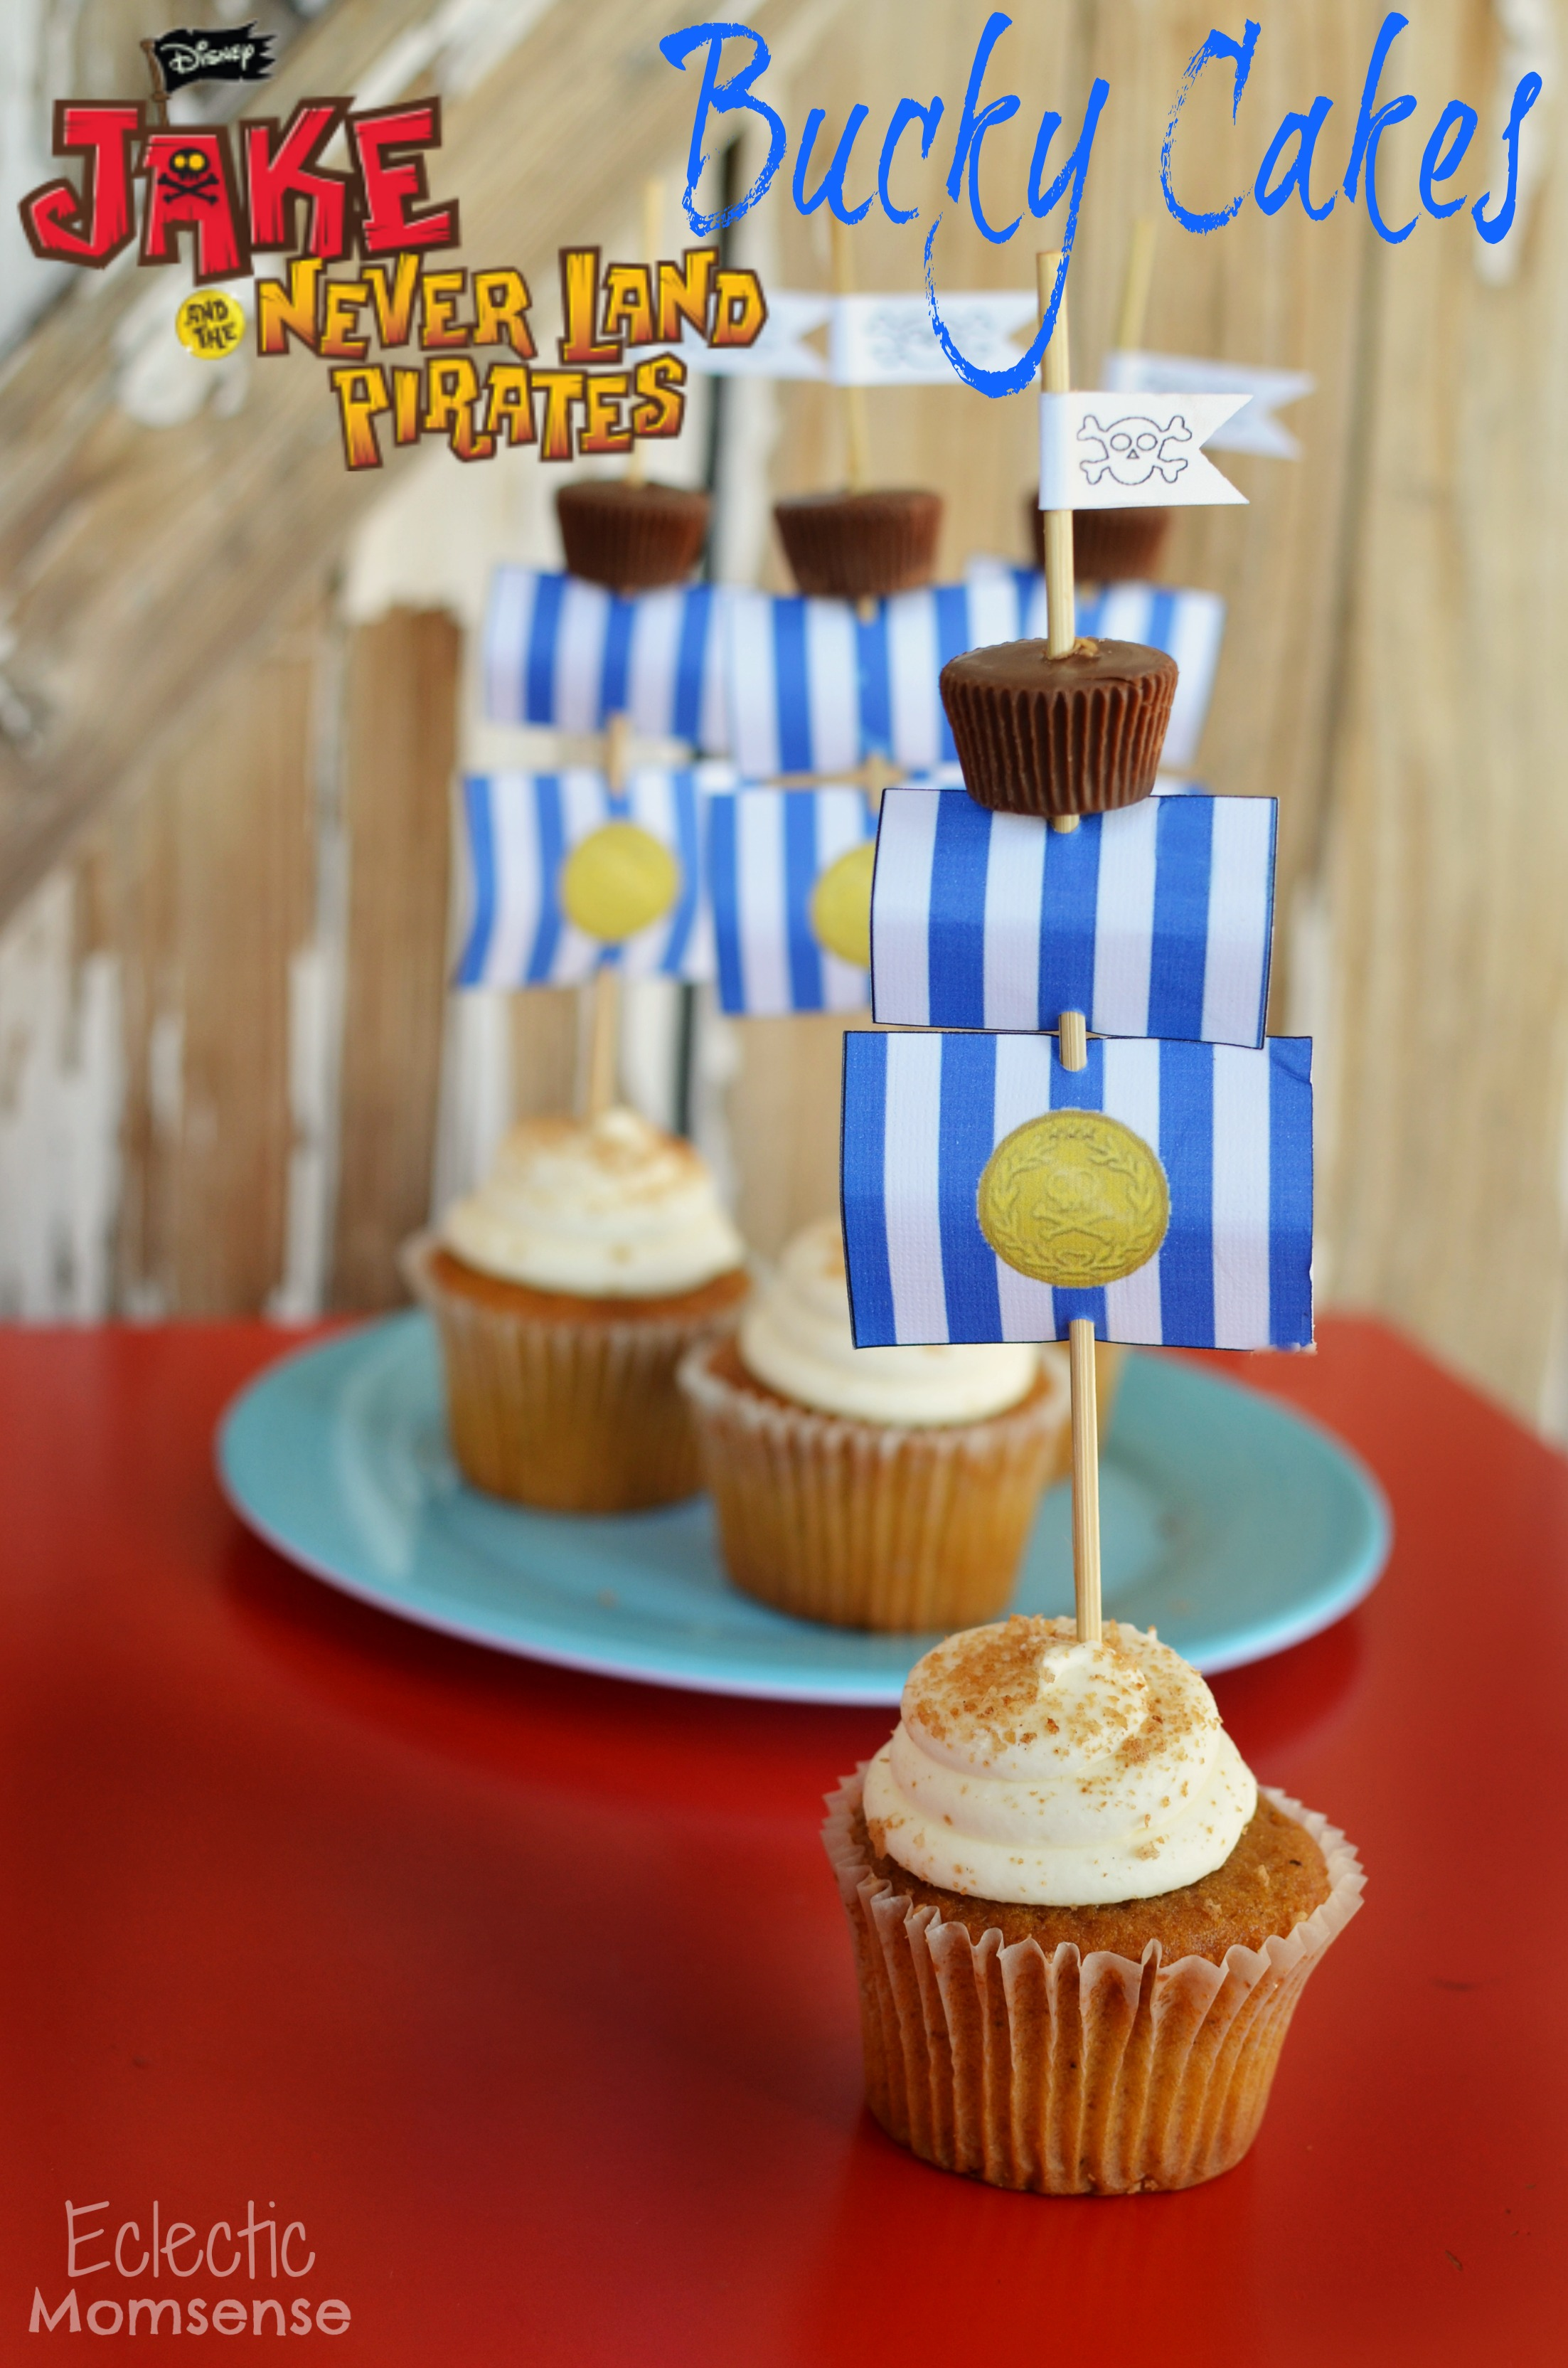 Tremendous Jake And The Neverland Pirates Bucky Cupcakes Eclectic Momsense Personalised Birthday Cards Fashionlily Jamesorg